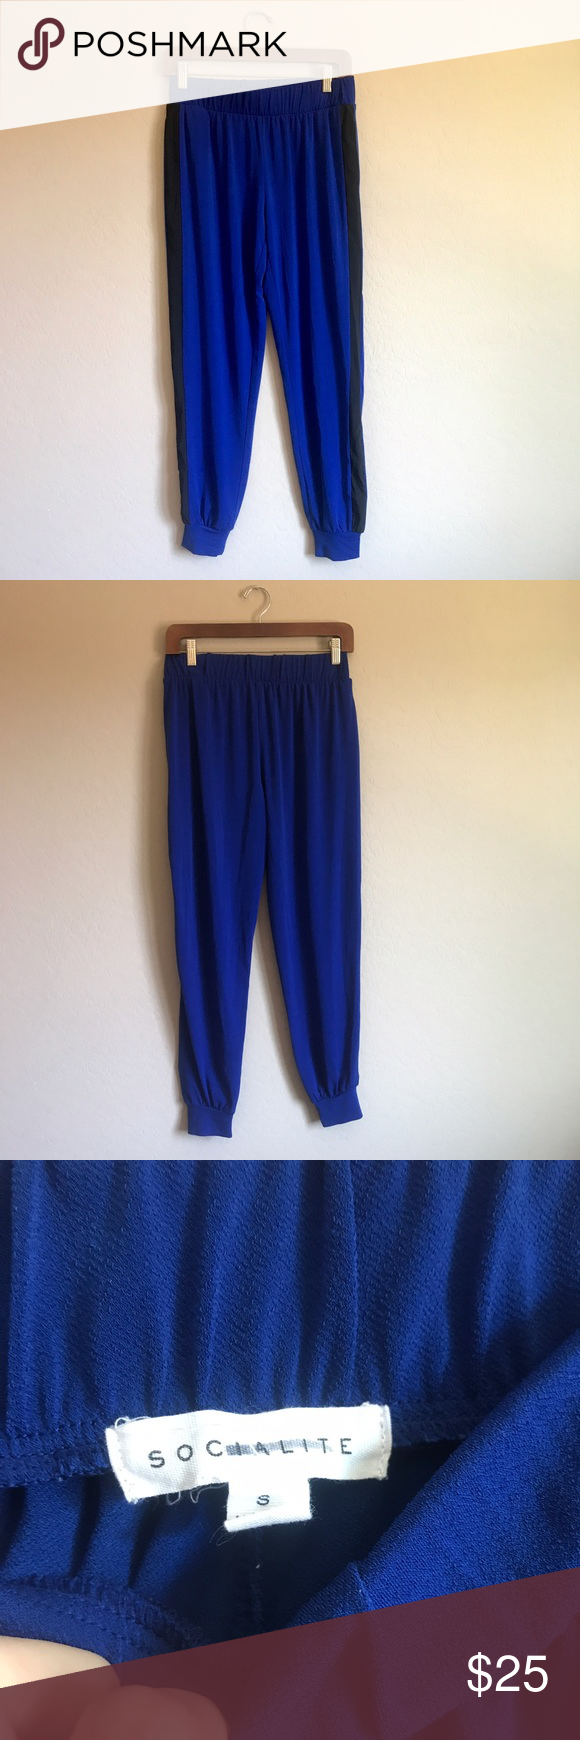 Socialite Royal Blue Jogger pants Great condition ✨ two side pockets, Size small. Measurements in inches: 13 waist, 9 rise, 37 length, 28 inseam, 4 leg opening ✨ Socialite Pants Track Pants & Joggers